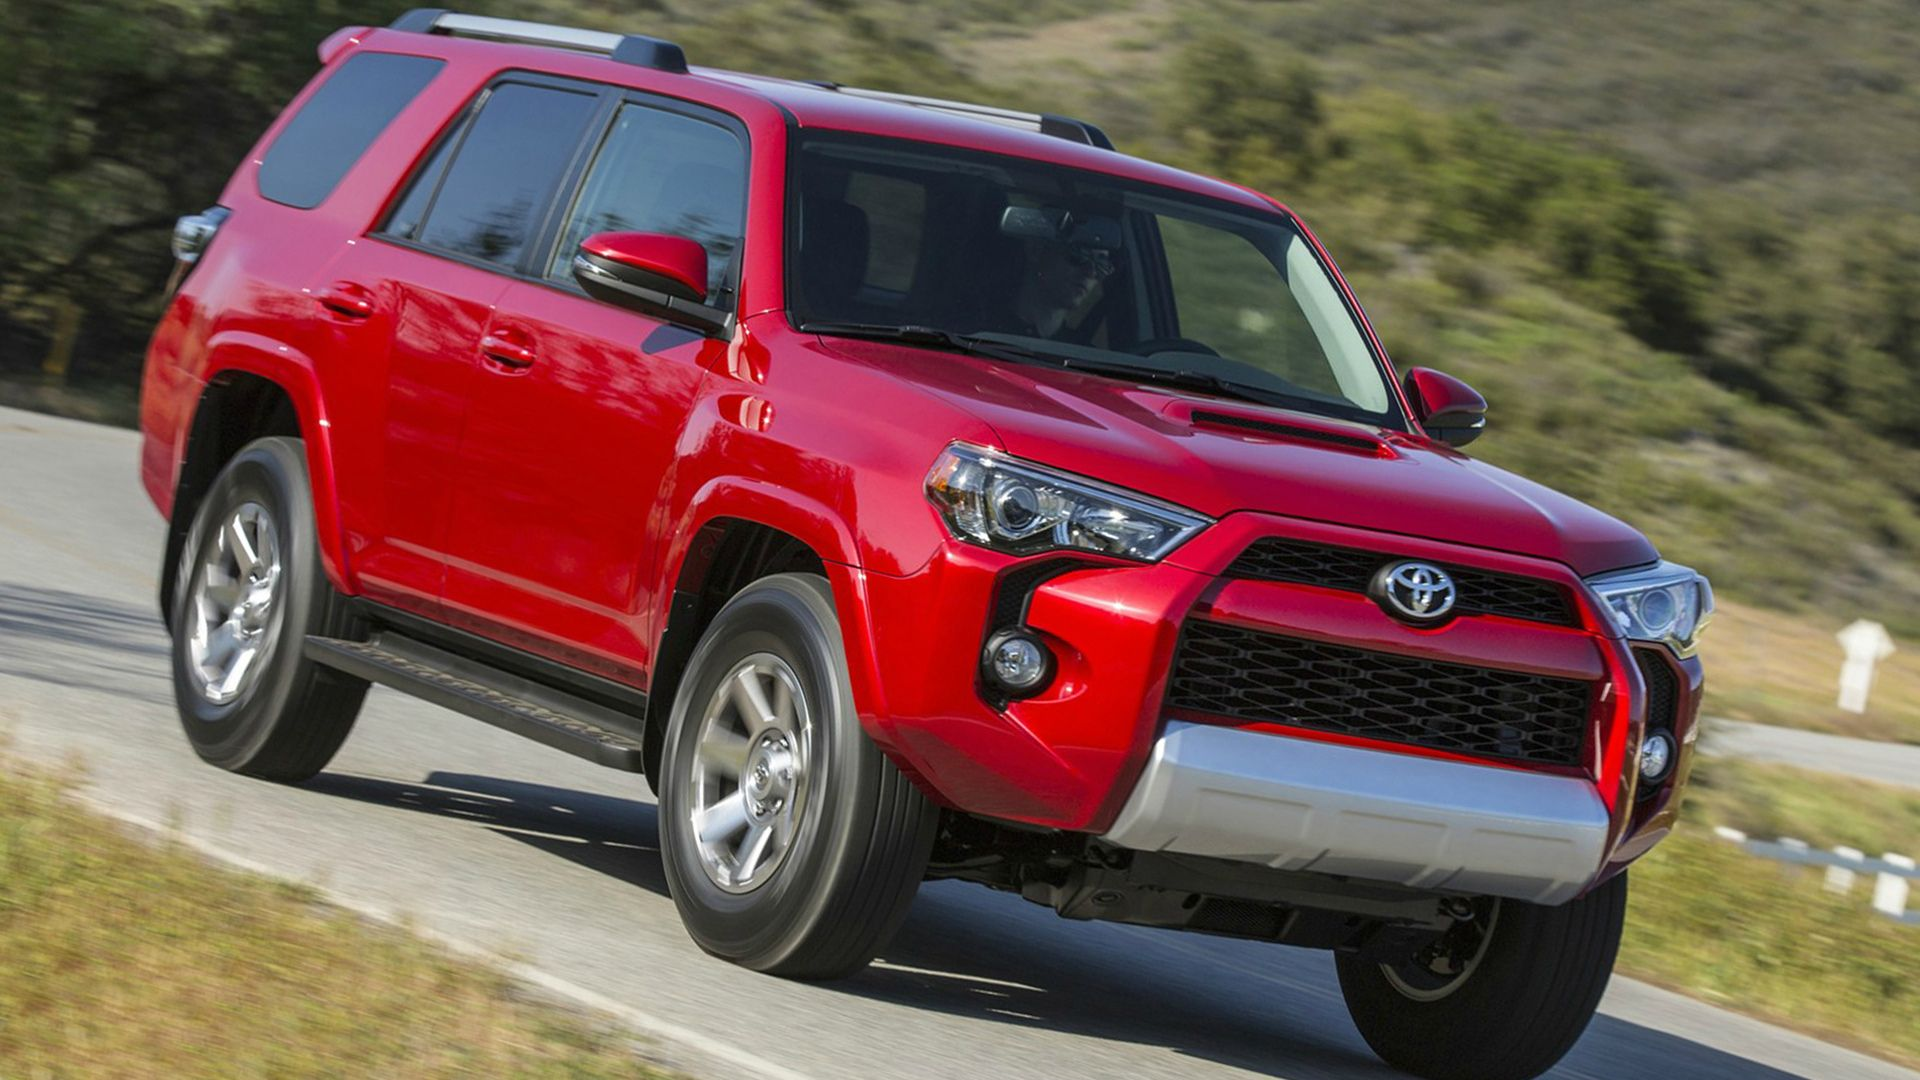 New 2019 Toyota 4runner Wallpaper HD Desktop